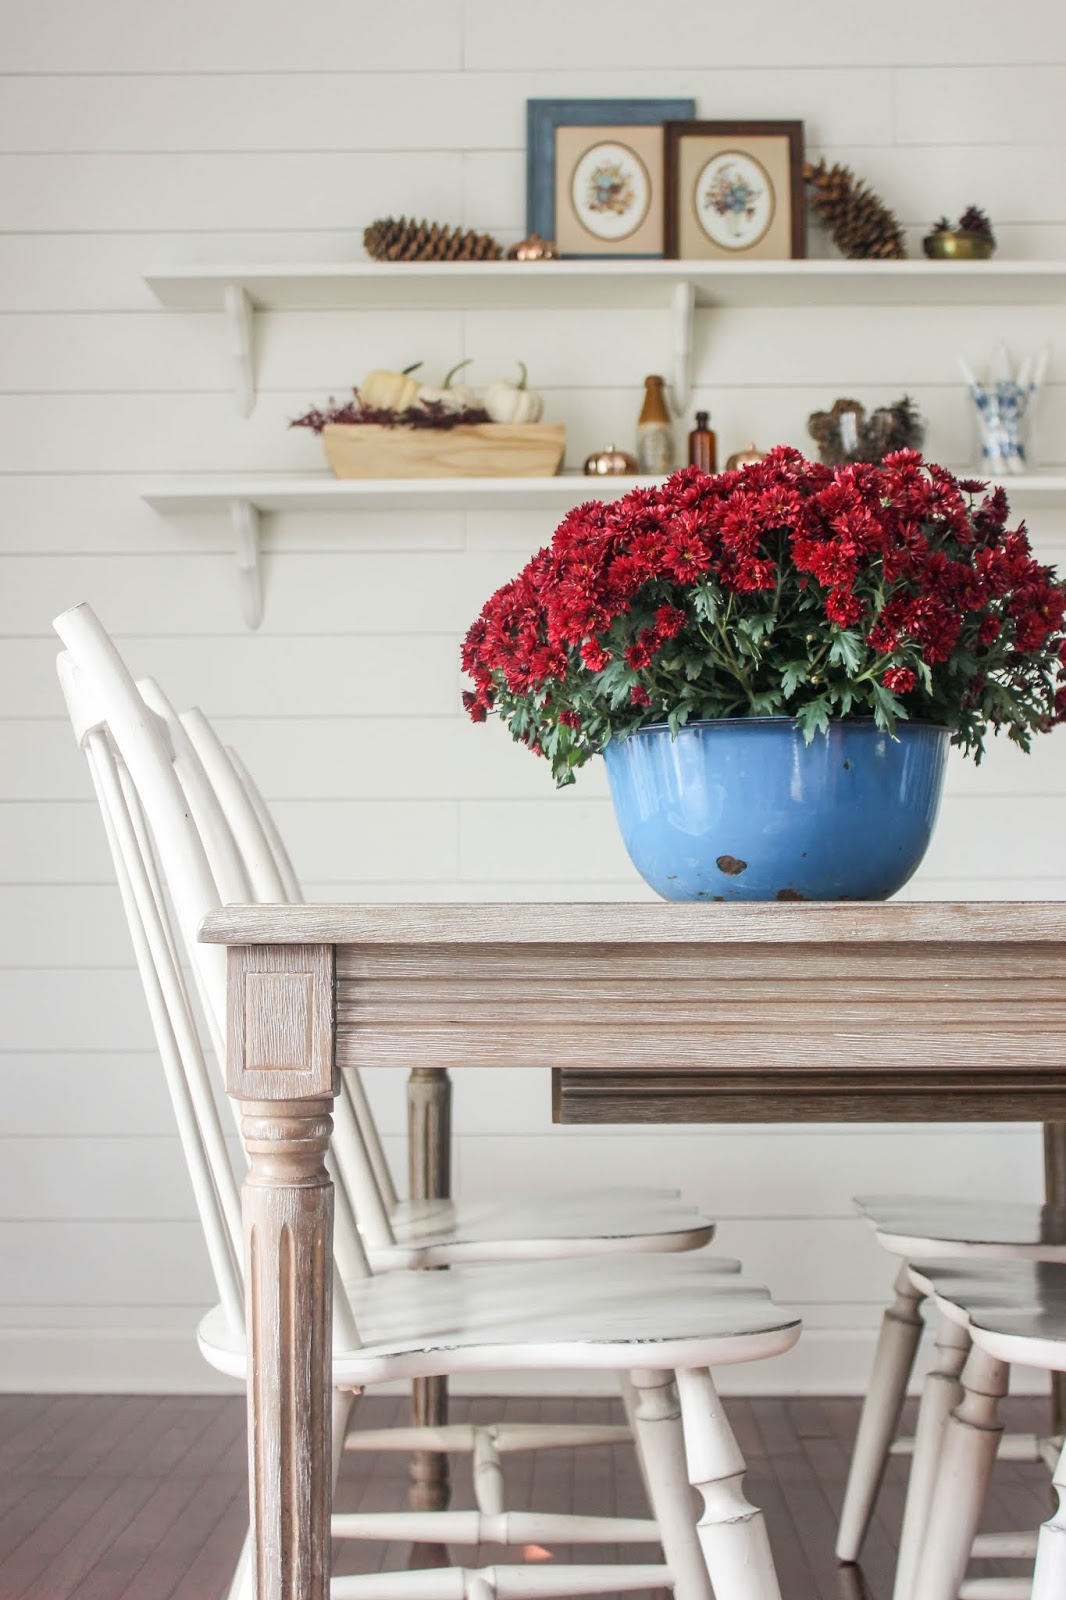 Decorating for fall with Mums